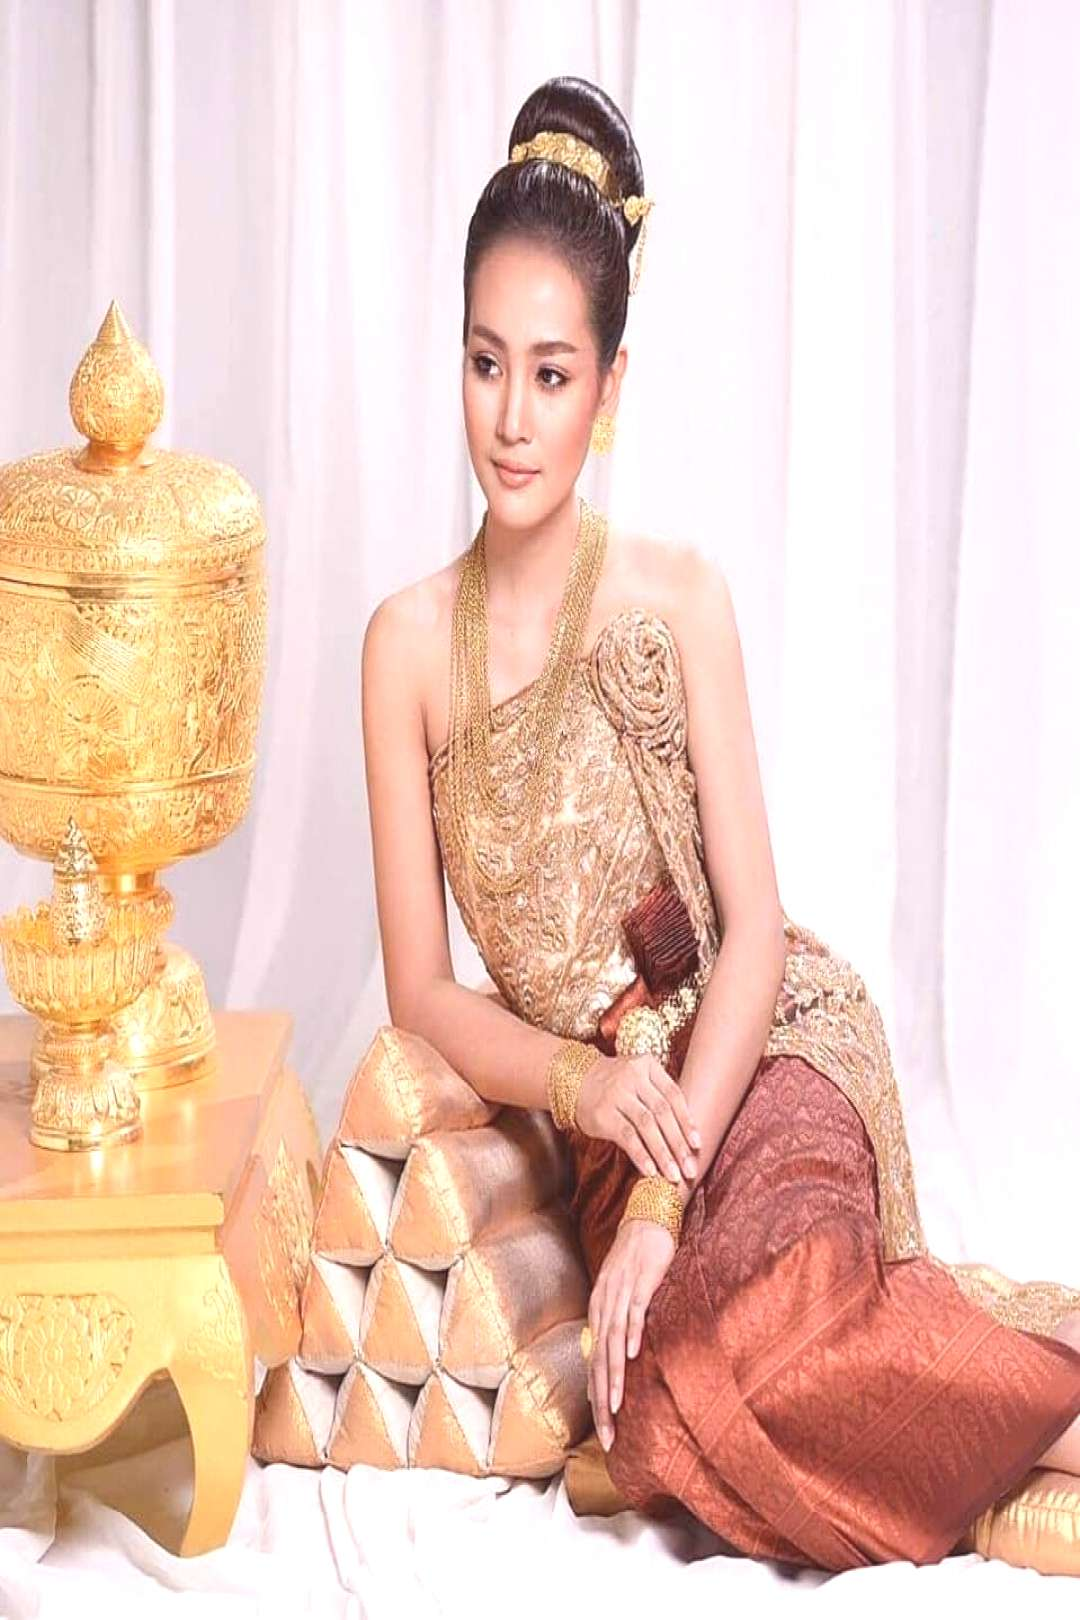 Khmer traditional clothes ?? An old riches Khmer culture in Southeast Asia culture ❤️❤